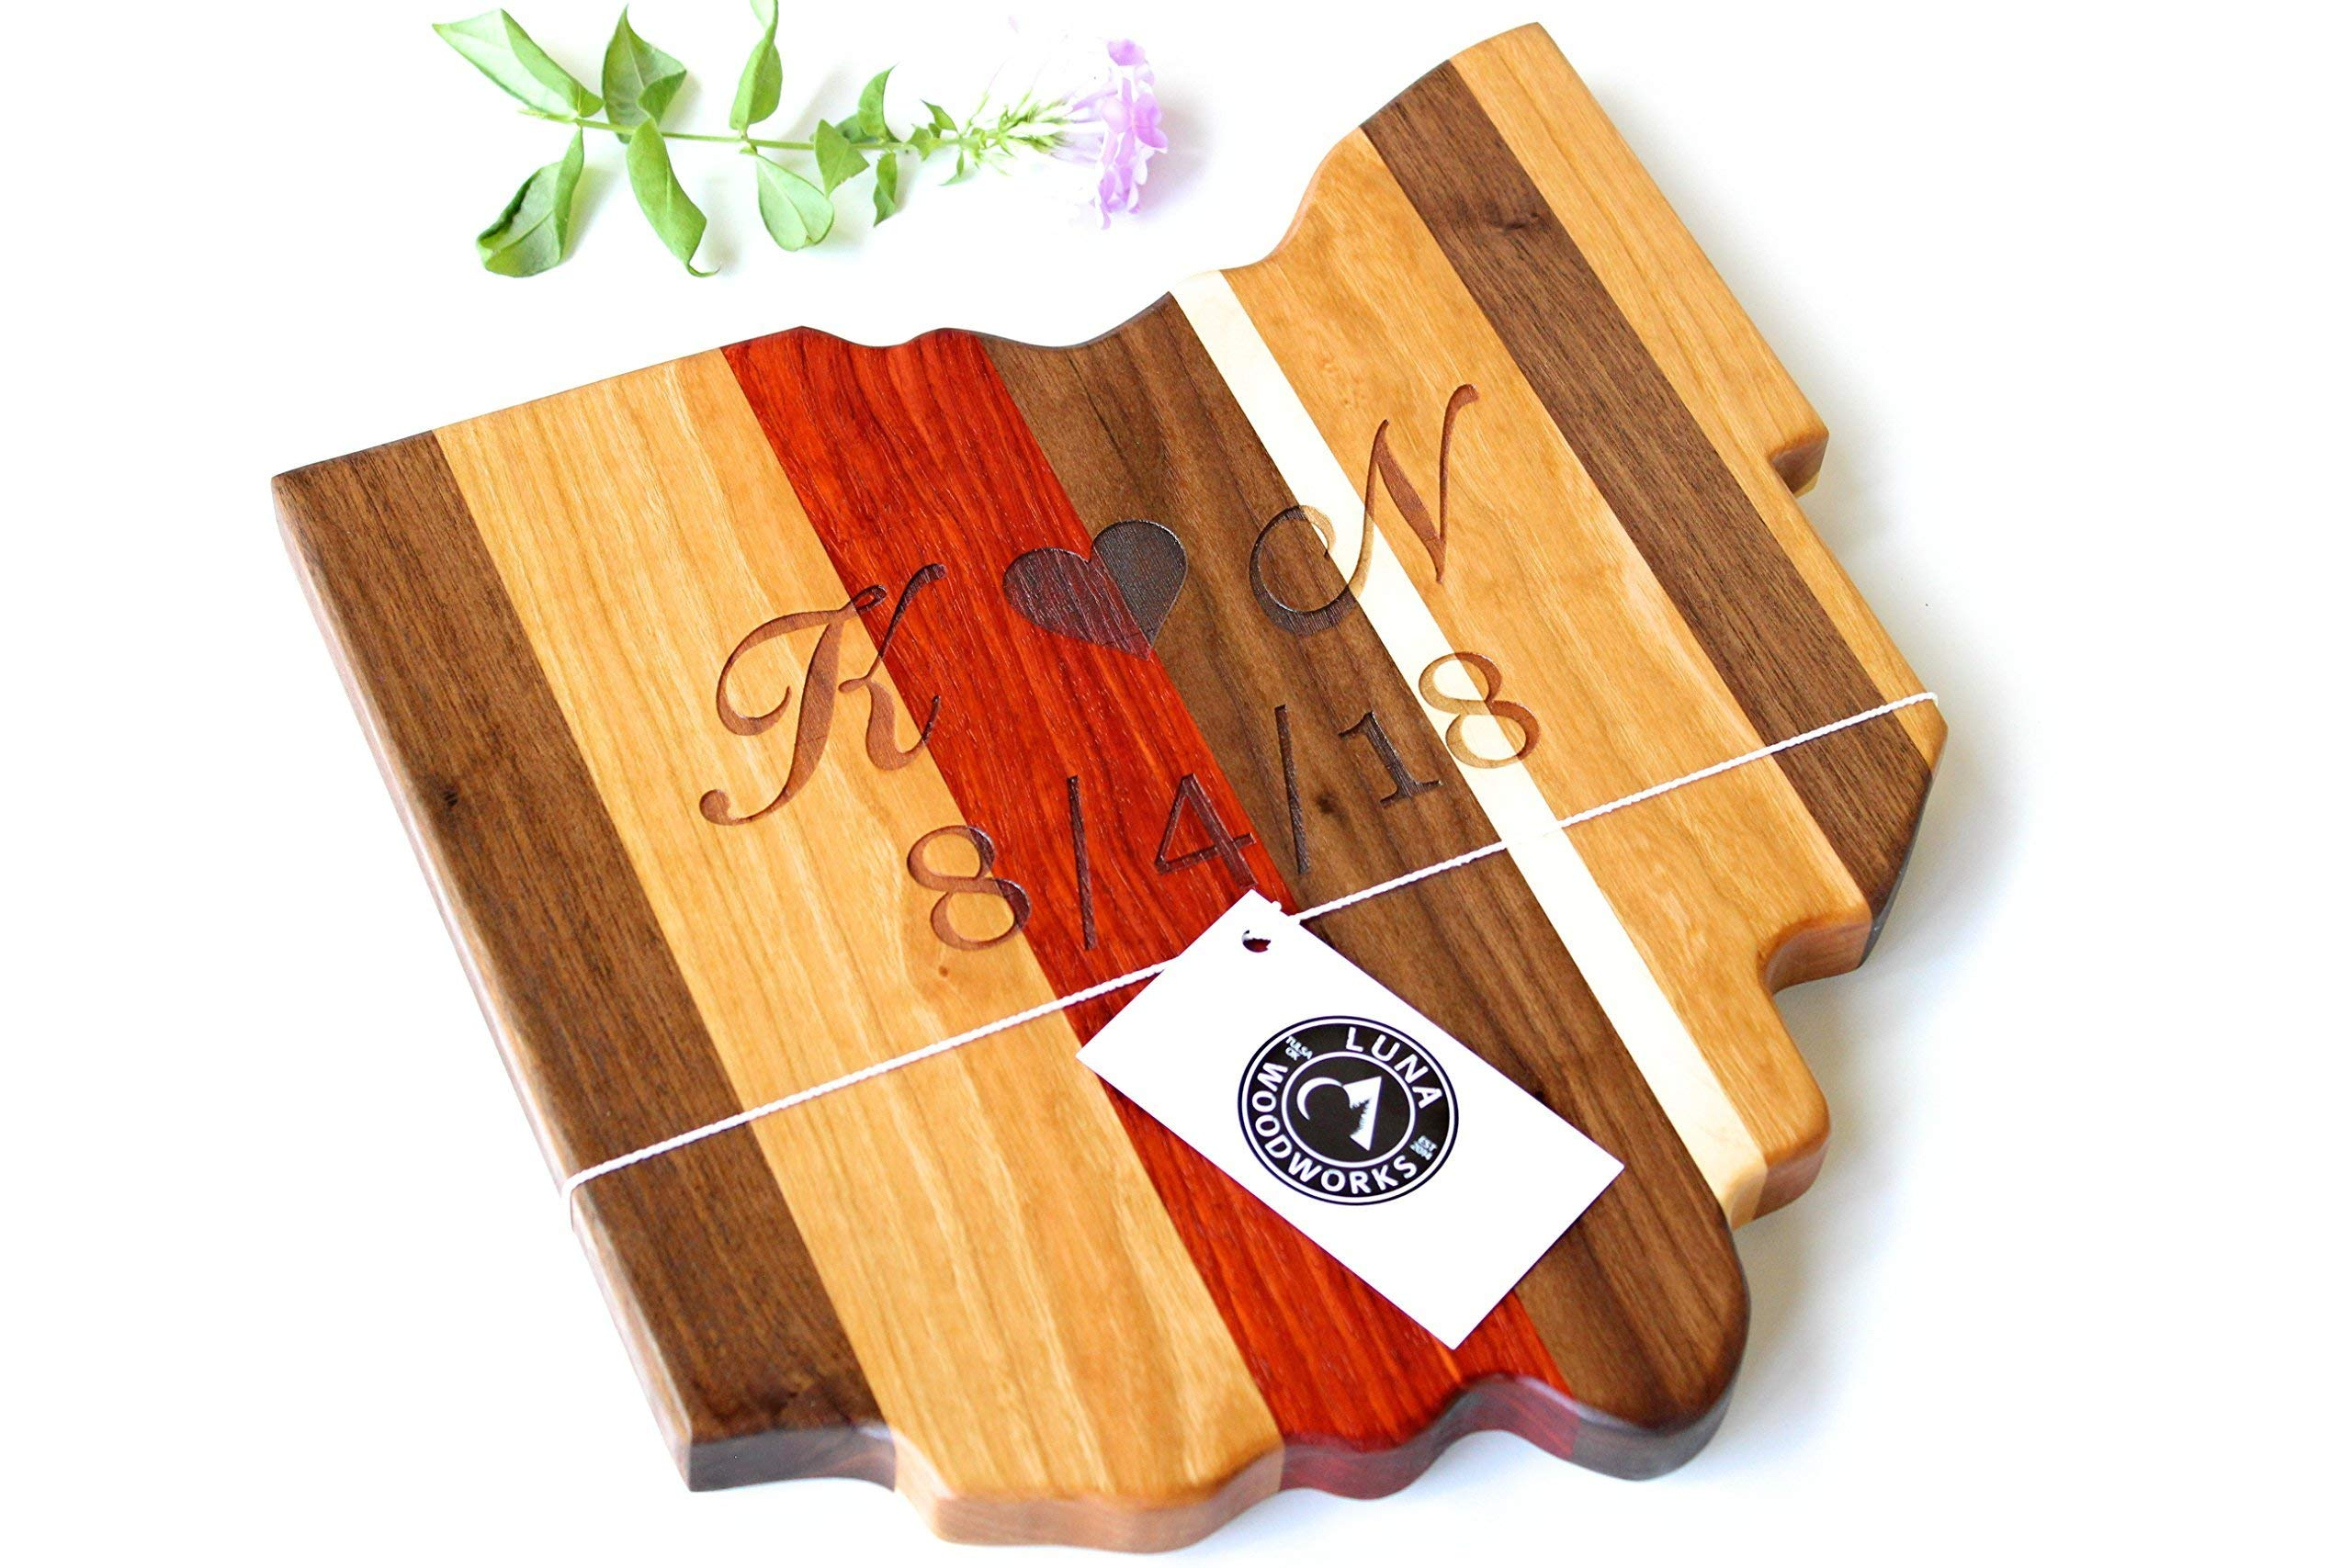 Ohio Cutting Board Engraved Personalized Wood Wedding Anniversary Gift Buckeye Football University Artisan Closing Gift Chef State Cooking Wall Art Woodworking Cheese Handmade in USA